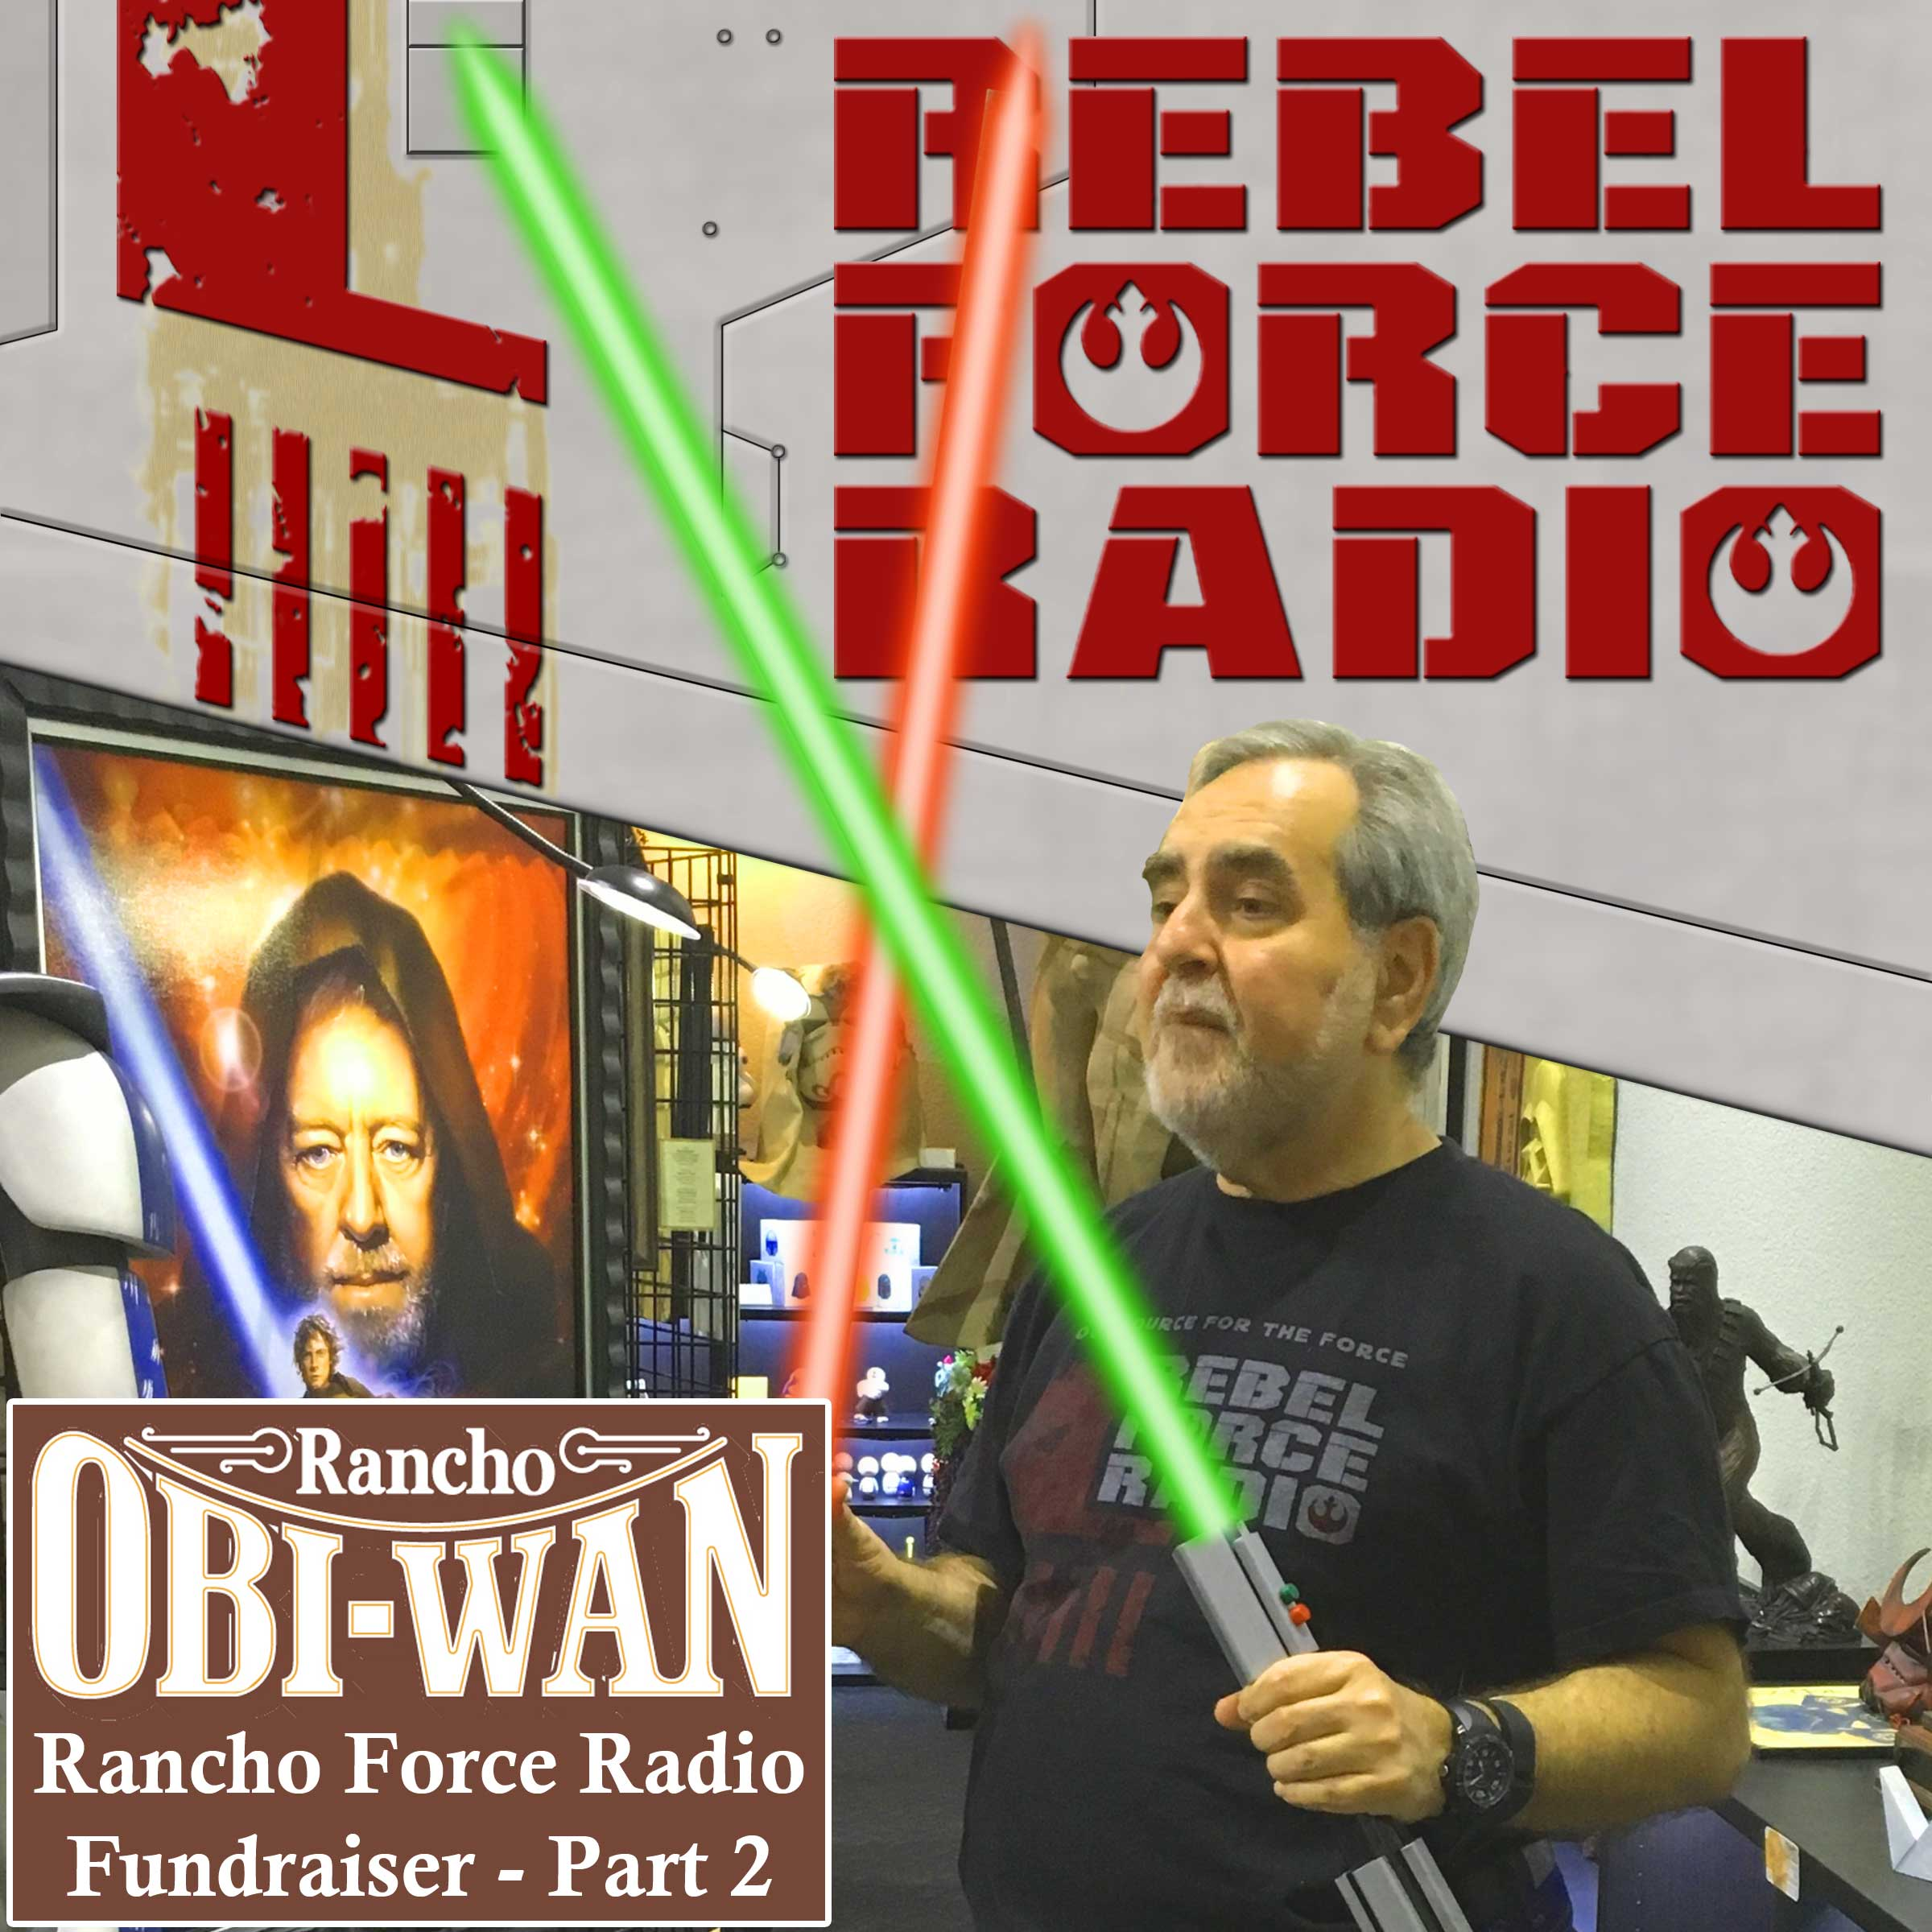 RFR Live from Rancho Obi-Wan Part 2